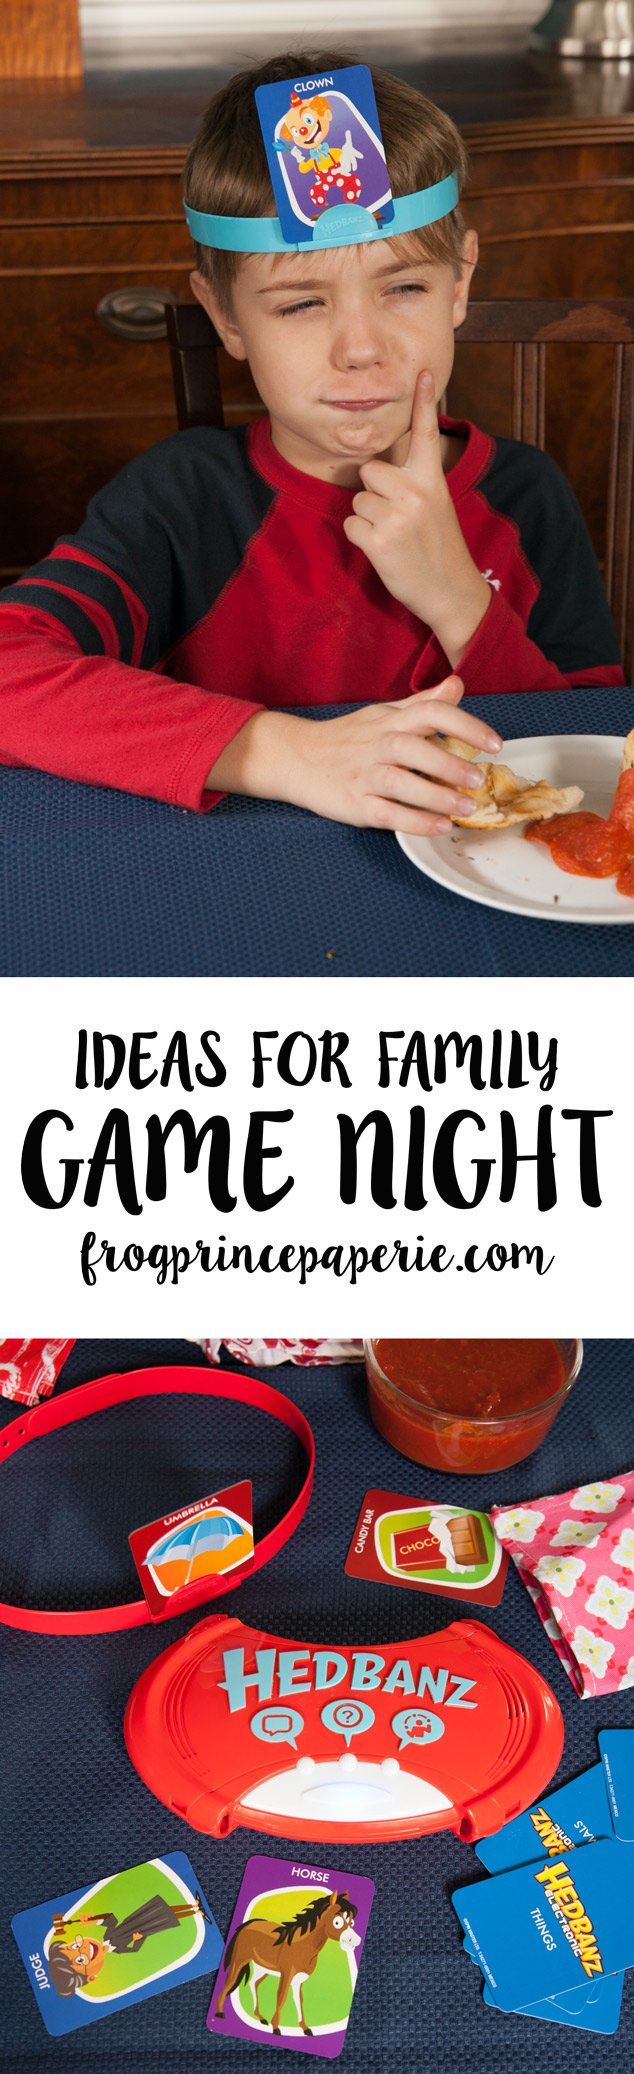 Family Game Night ideas with Hedbanz Electronic and Pull Apart Pizza Rolls